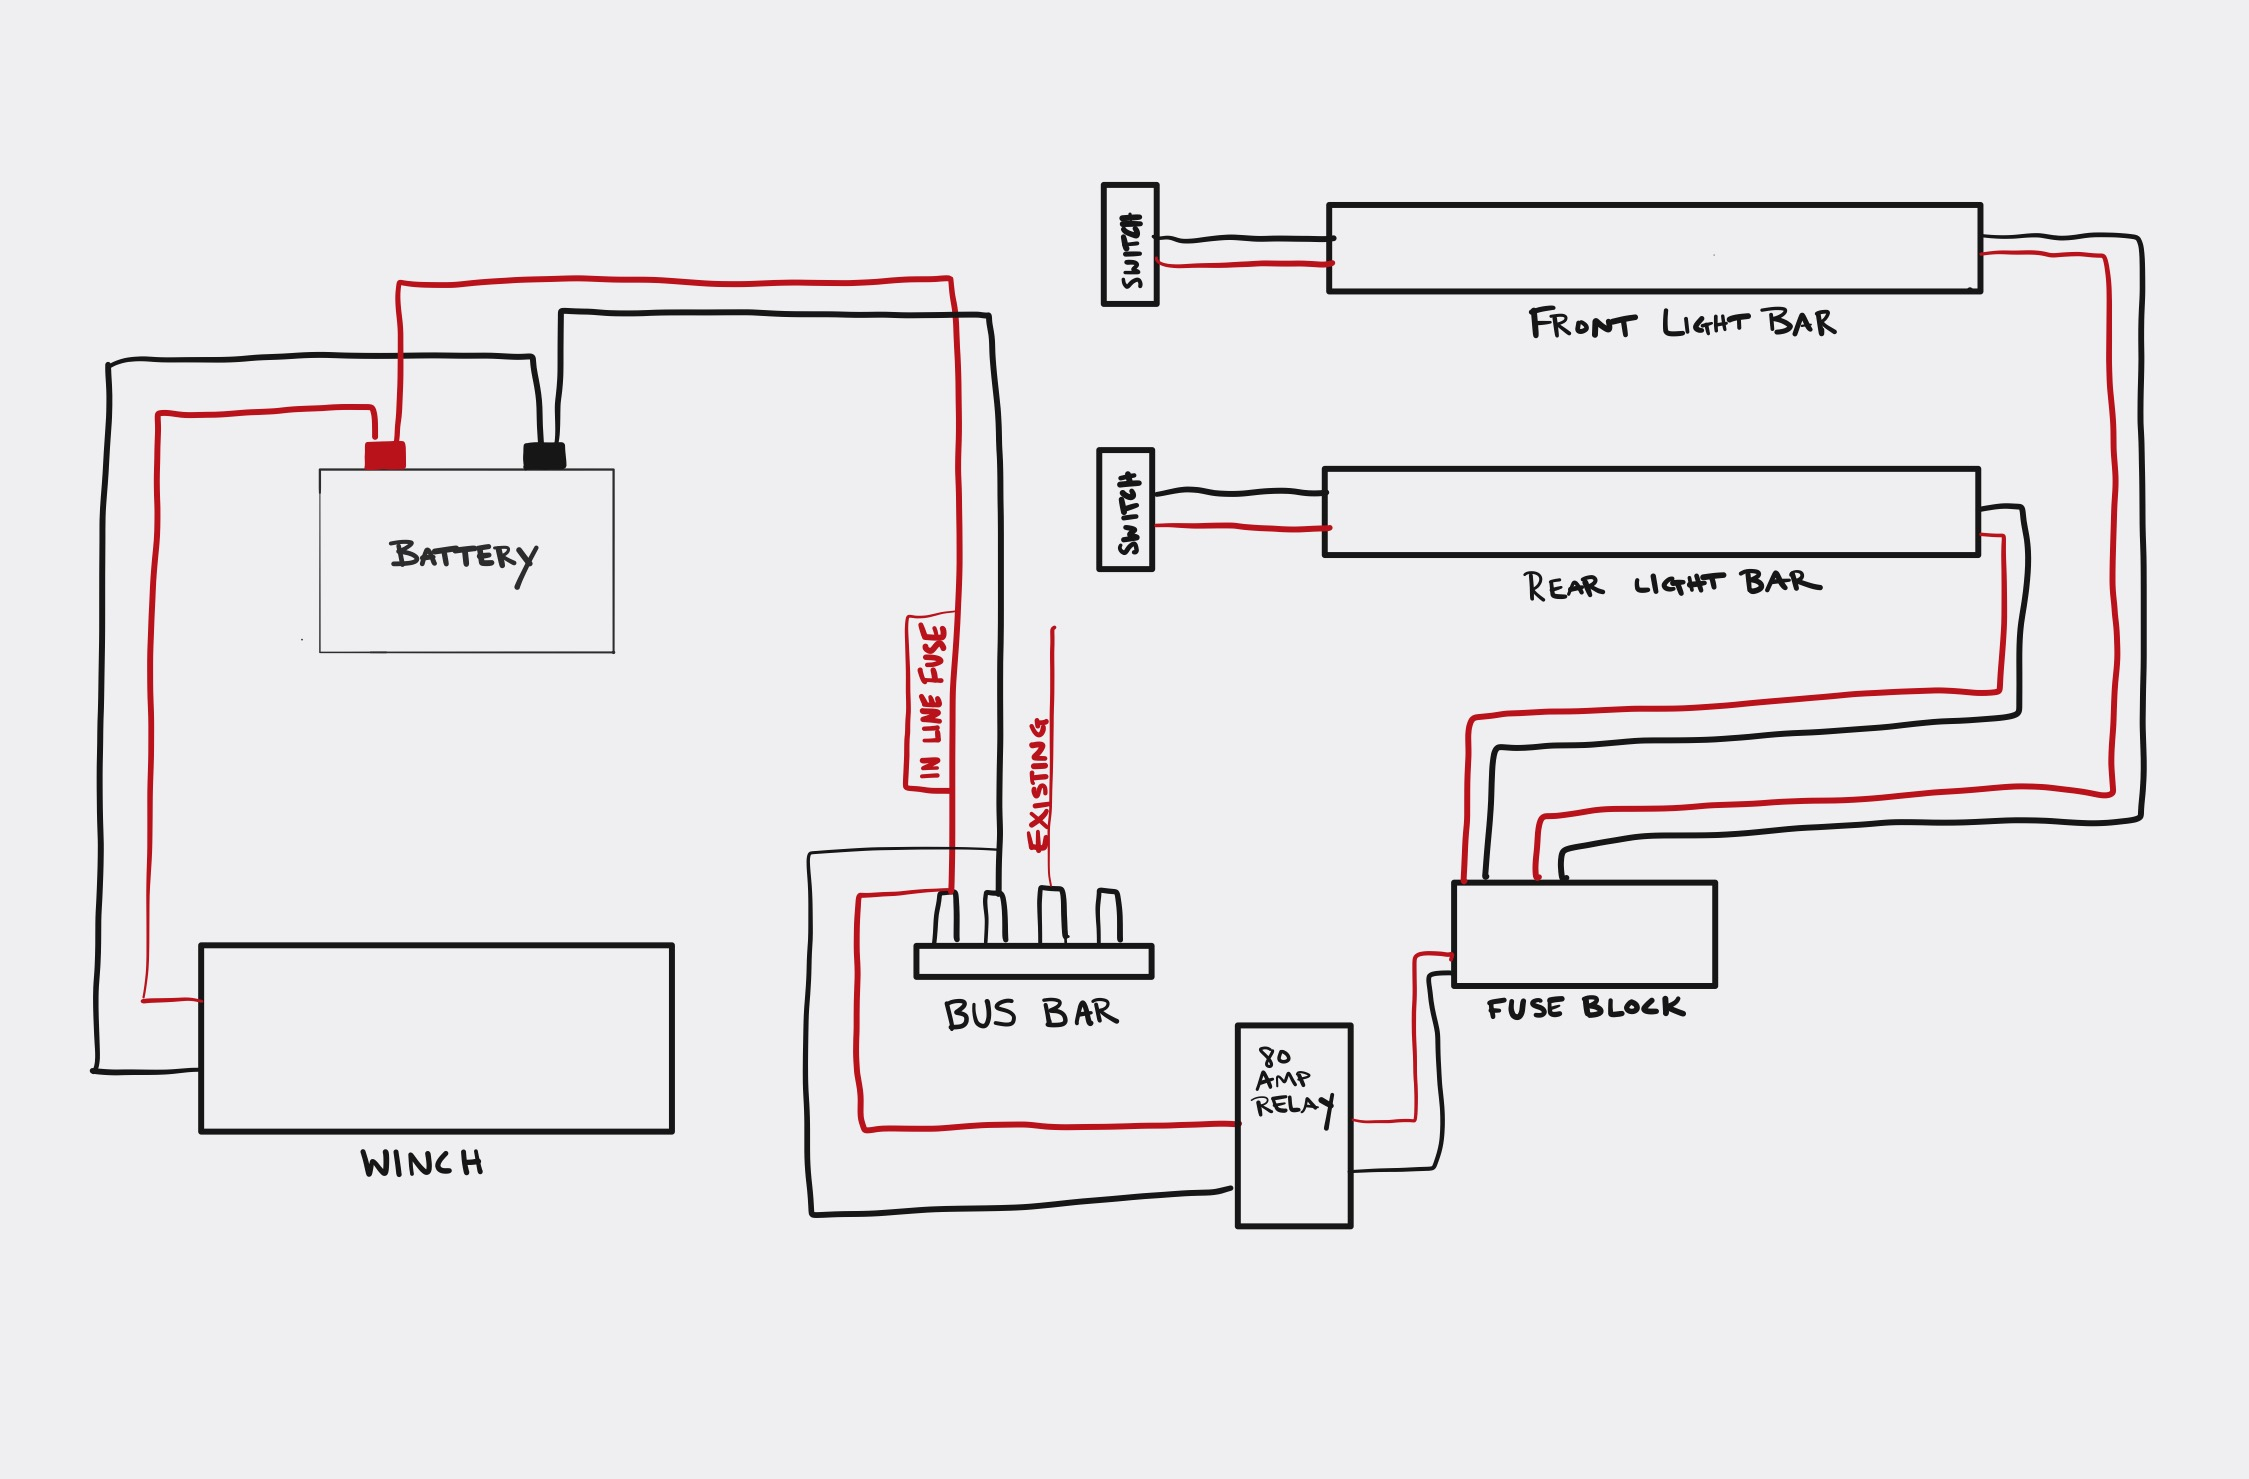 Wiring Diagram Please Check This For Me Prc Polaris Ranger Club